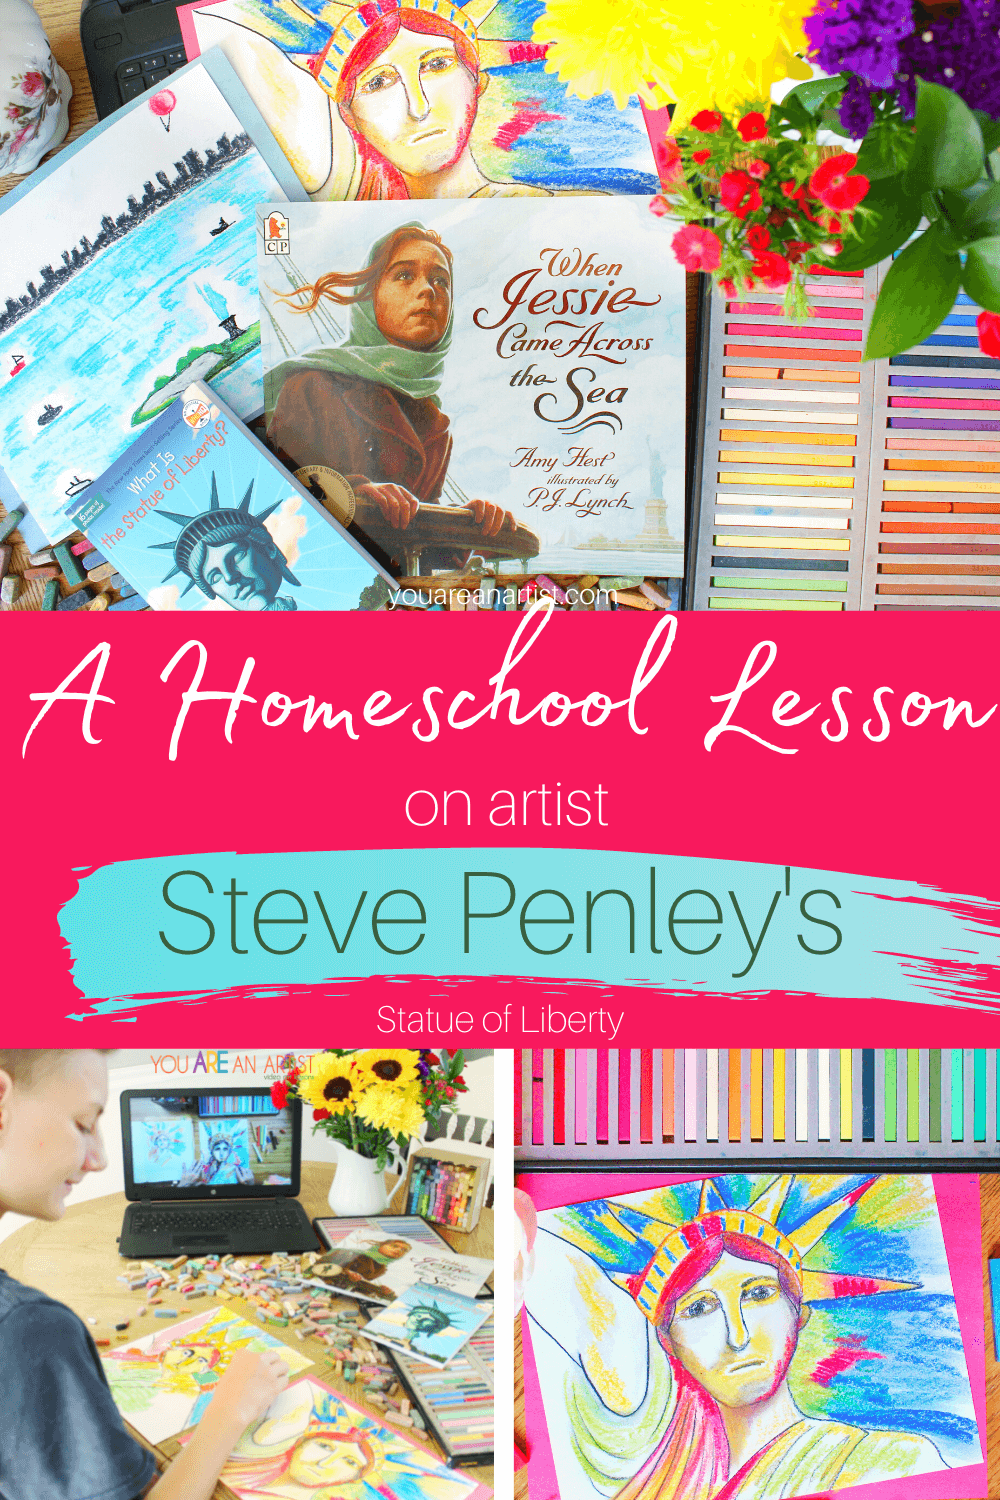 A Homeschool Lesson on Artist Steve Penley's Statue of Liberty : This homeschool lesson has everything you need to learn more about artist Steve Penley and the Statue of Liberty he painted, including a chance to create your own work of art! #onlineartlessons #chalkpastels #youareanartist #famousartists #statueofliberty #homeschoolart #artlessons #stevepenley